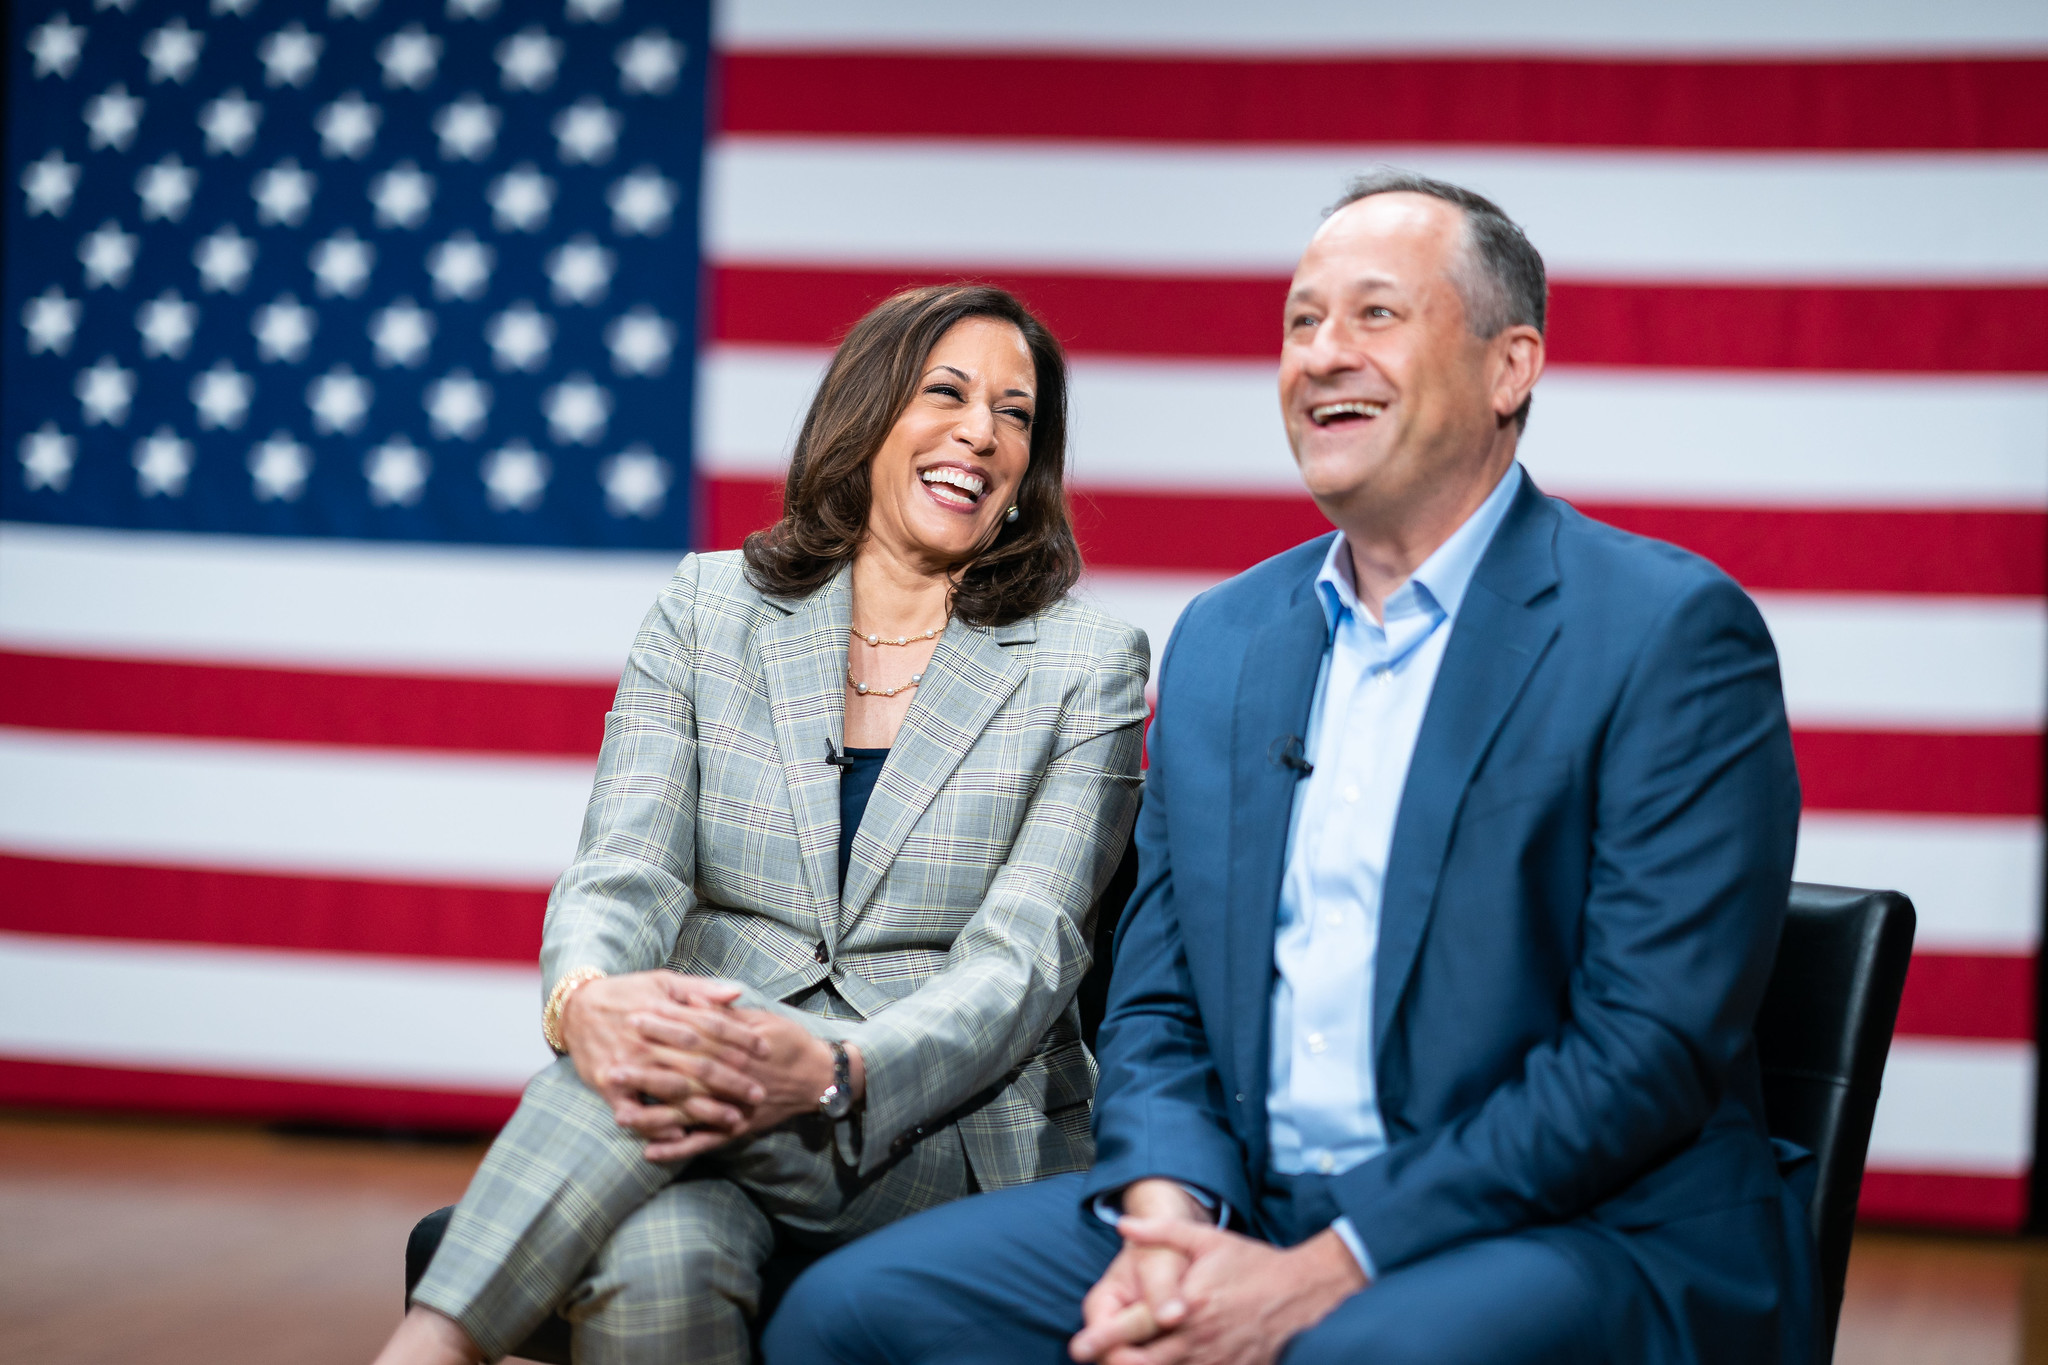 Doug Emhoff (right) sits onstage with his wife, Kamala Harris (left)